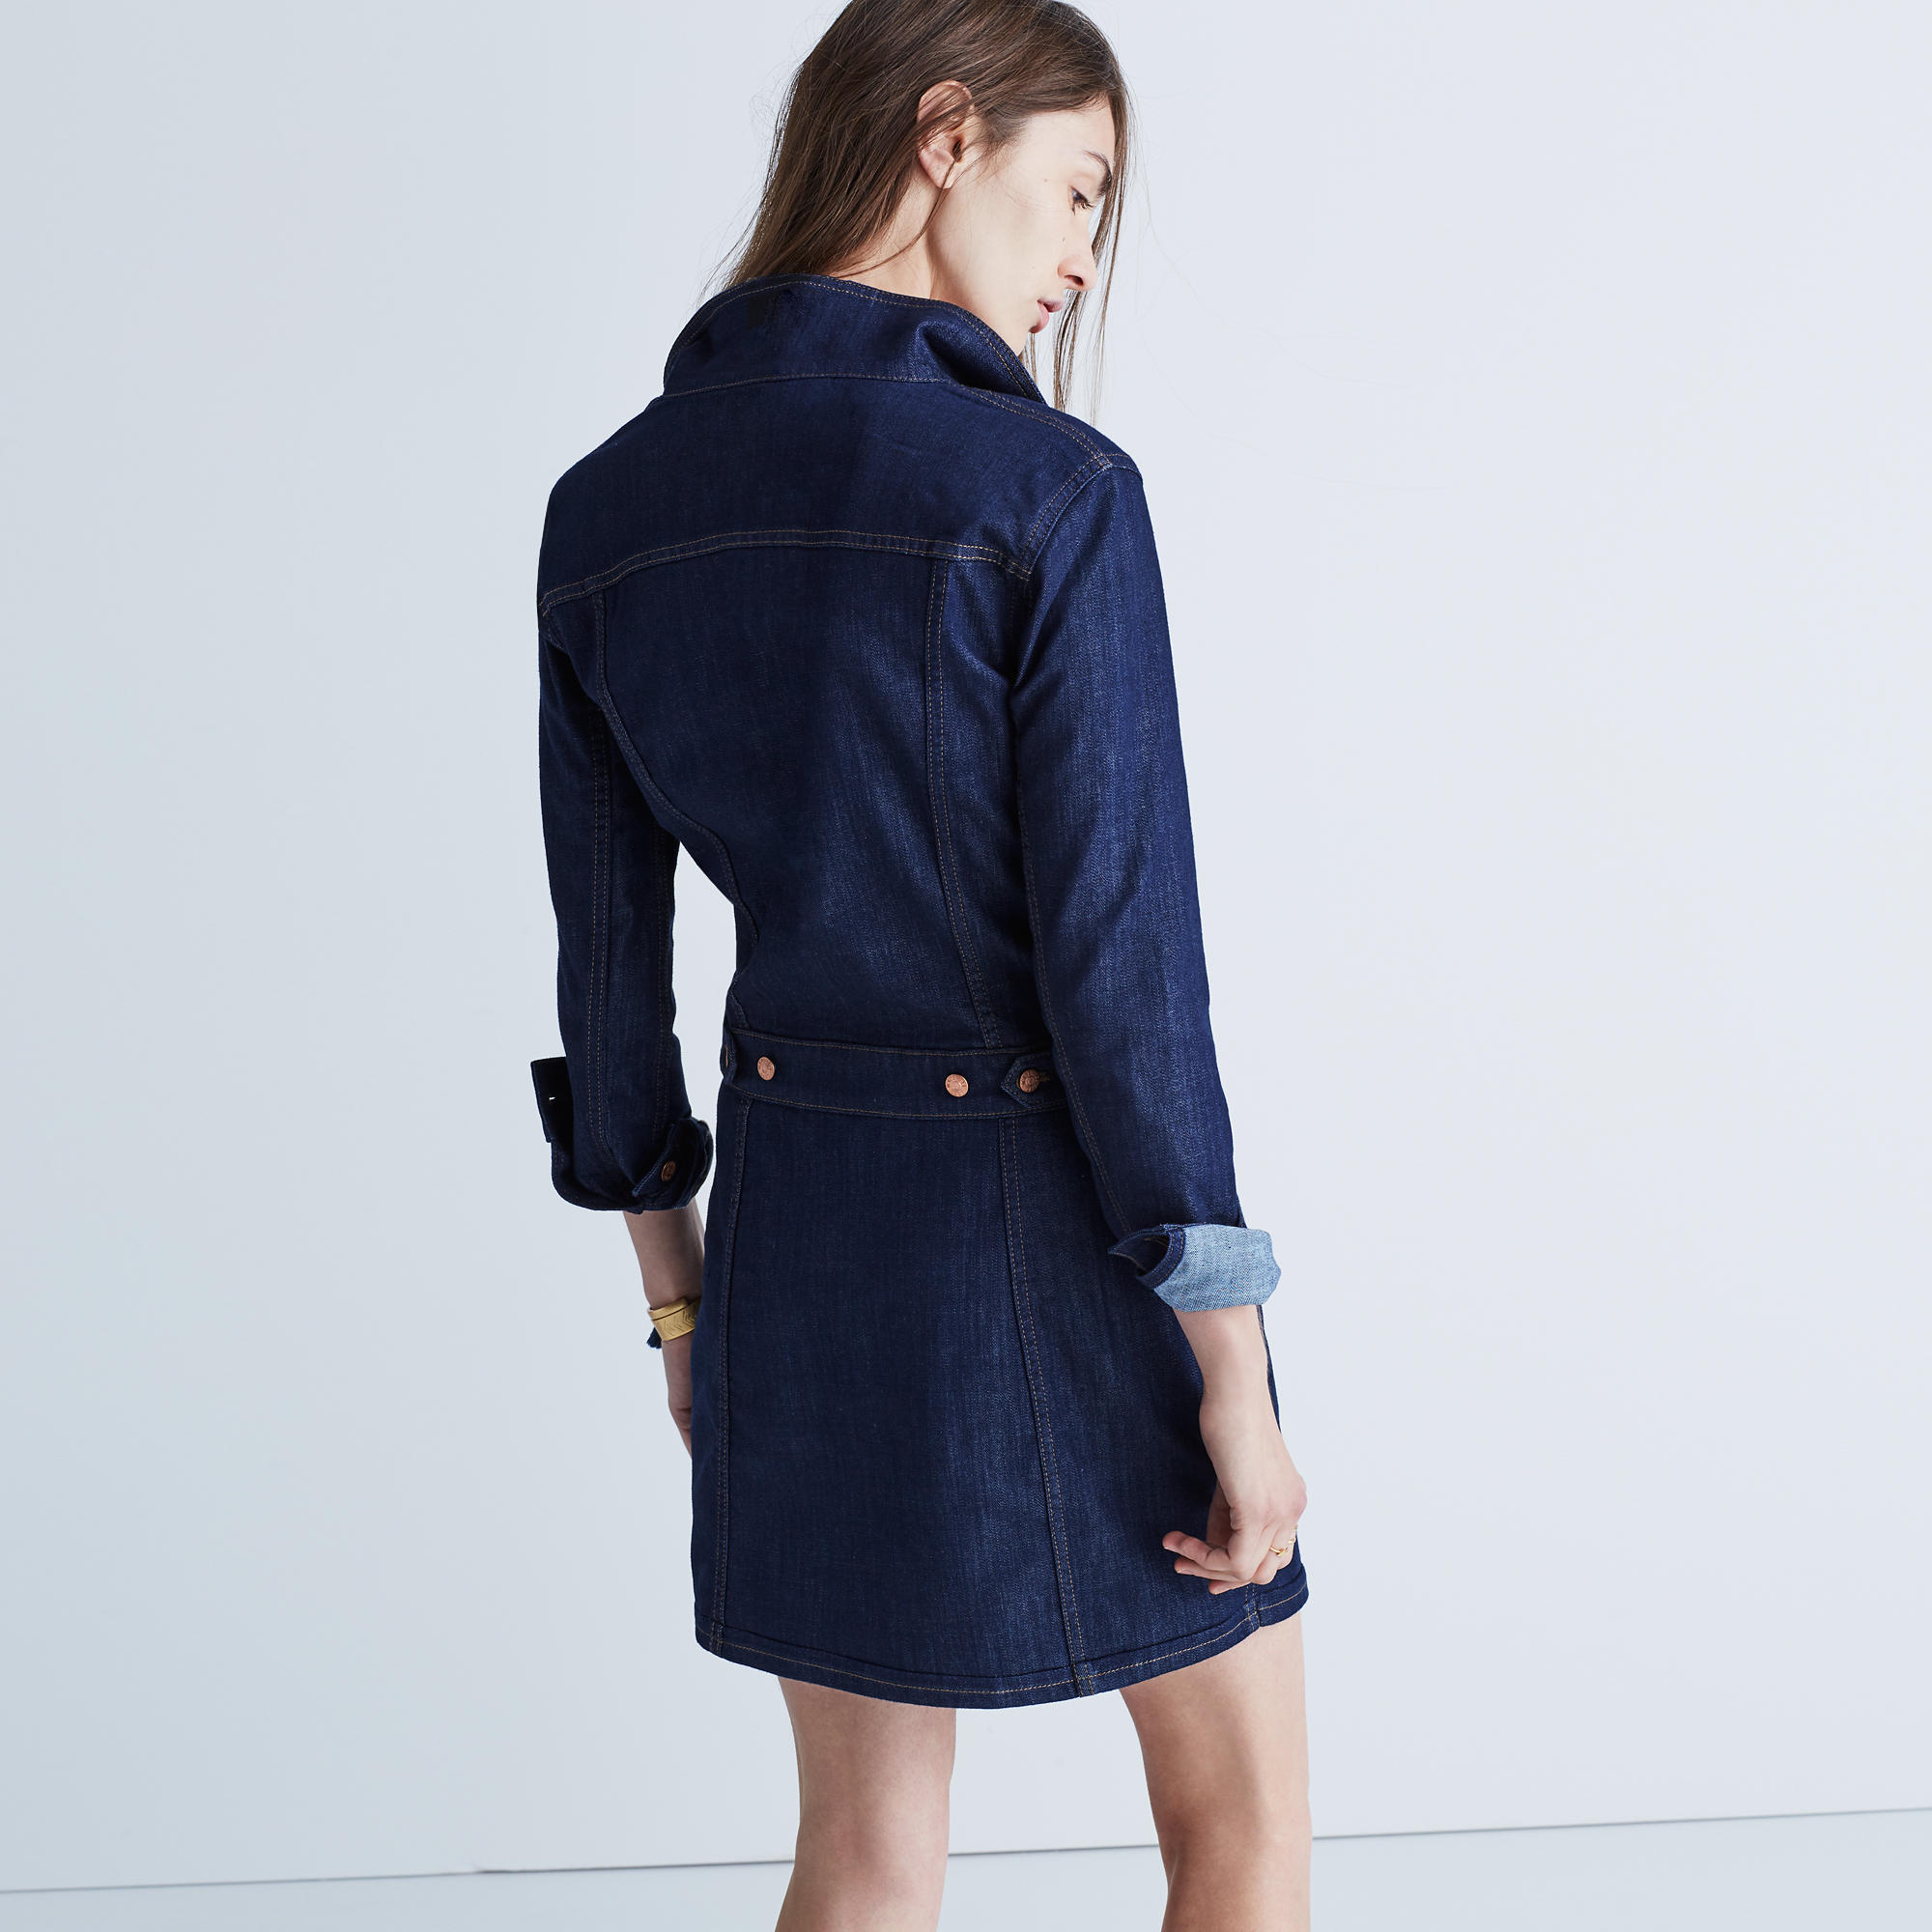 Jean Jacket Dress : more denim dressing | Madewell